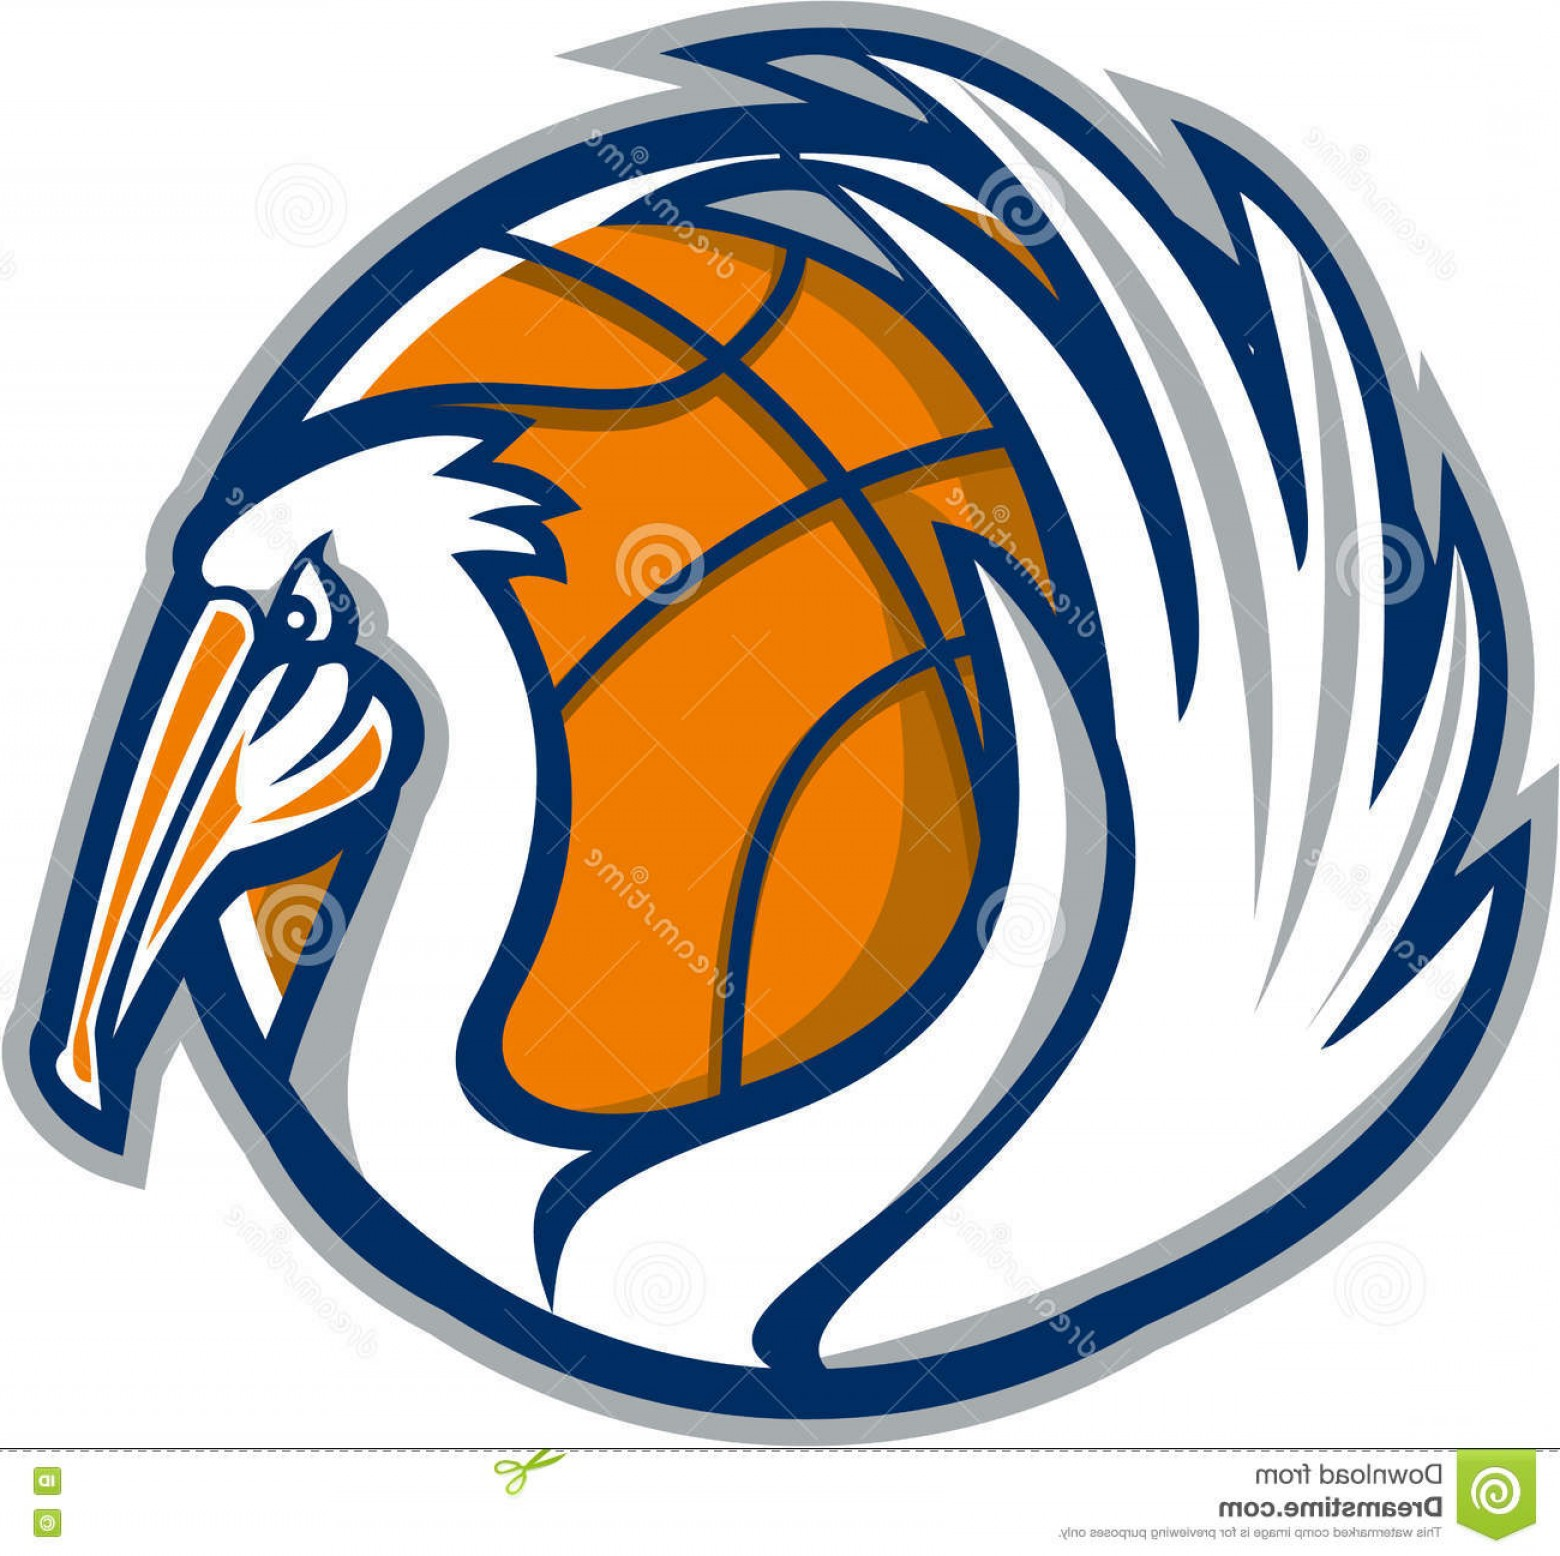 Pelican Vector Wings: Stock Illustration Pelican Wings Basketball Retro Illustration Showing Its Background Viewed Side Done Style Image